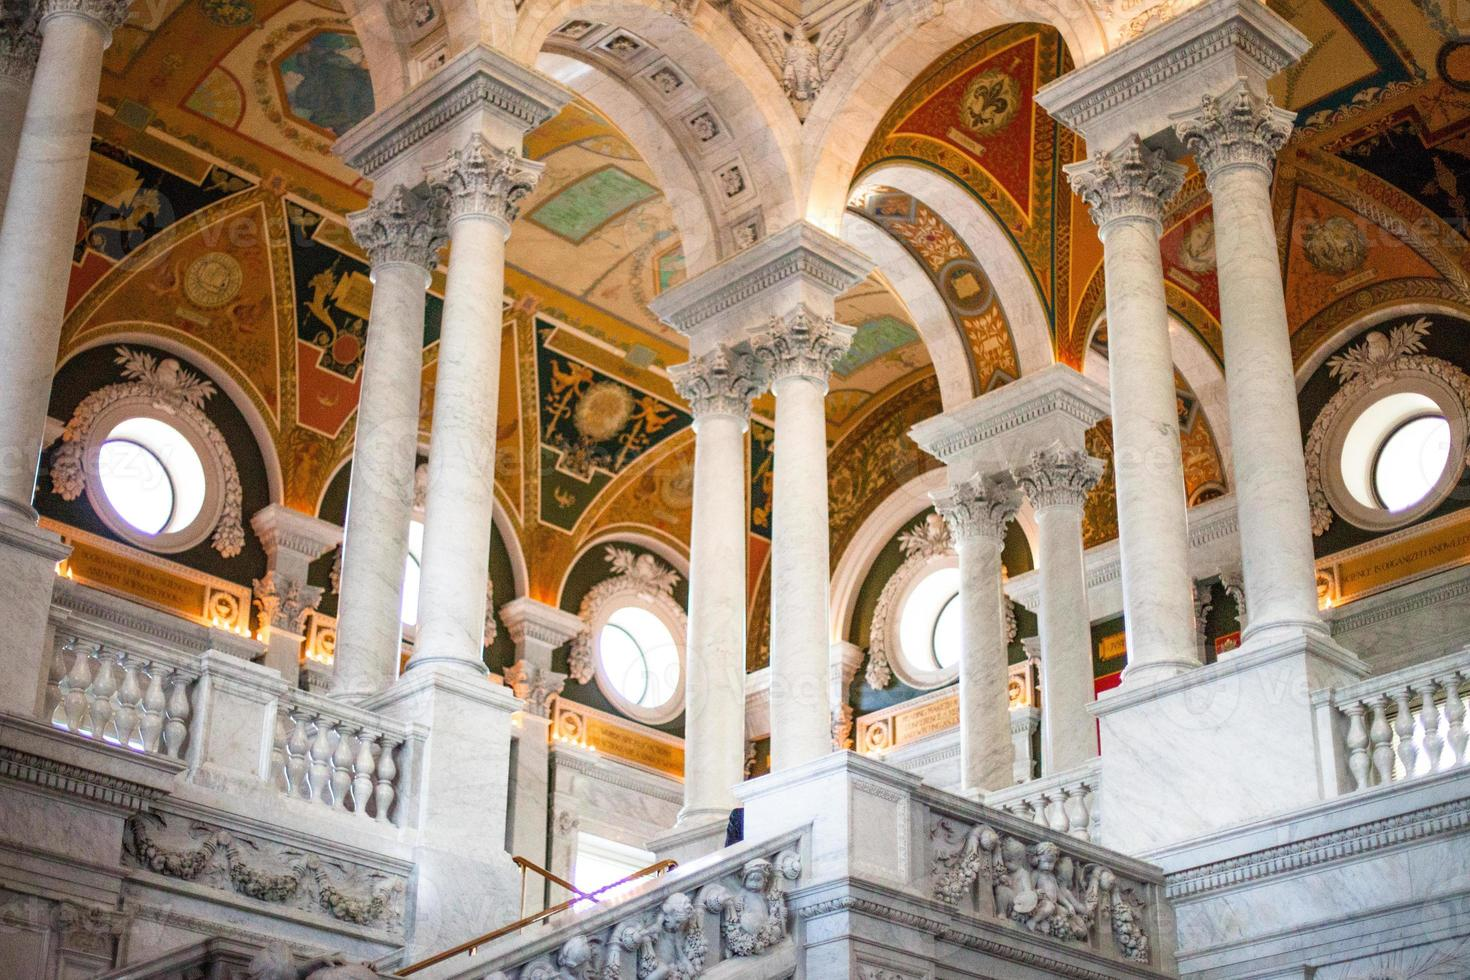 Library of Congress, Entry Hall photo